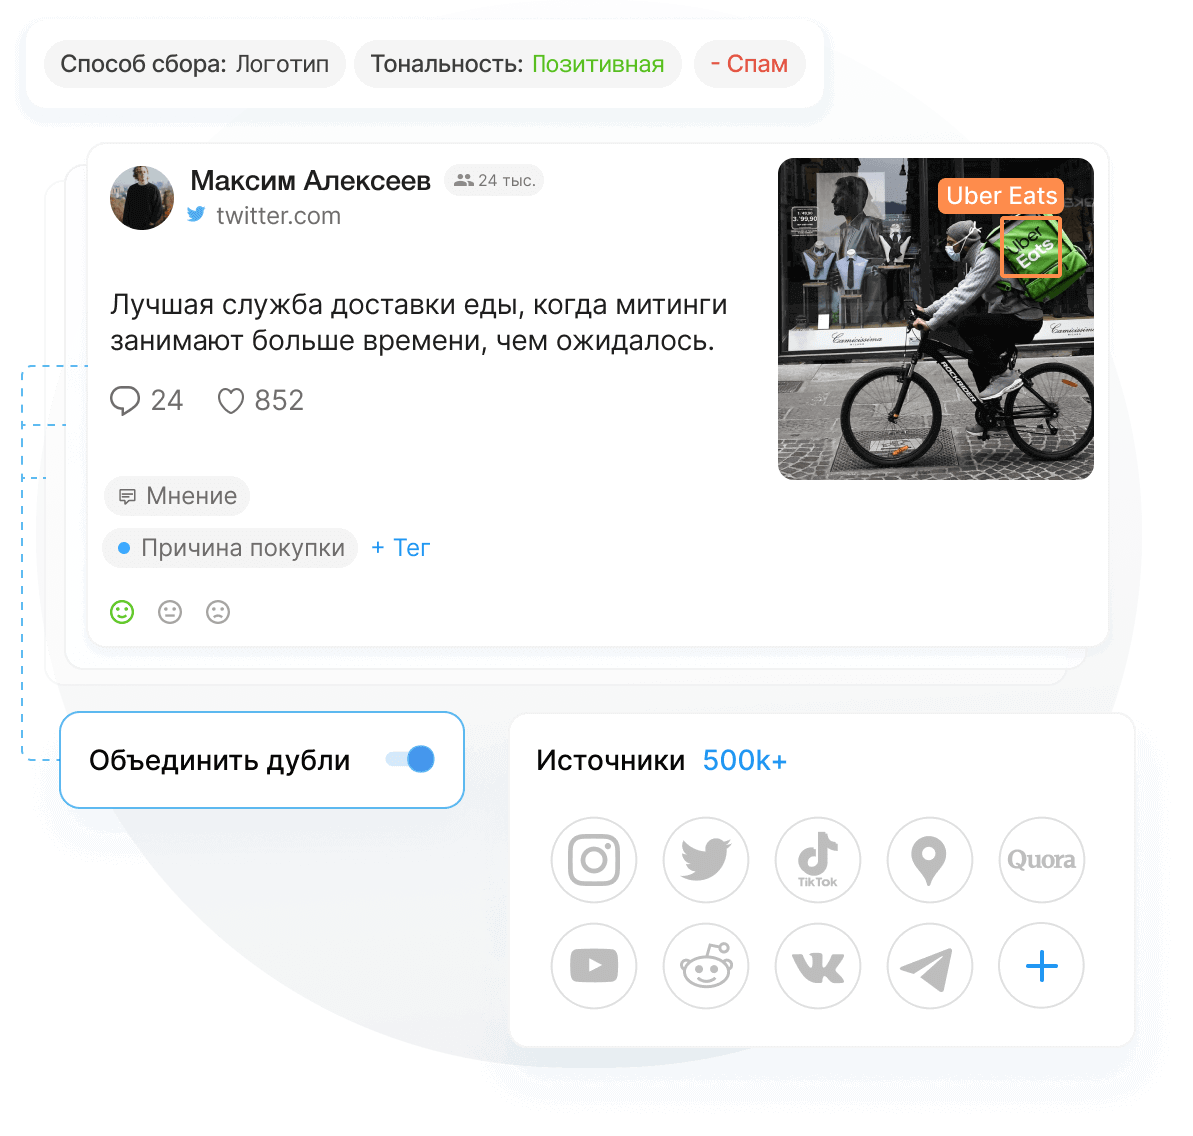 Real-time mention stream